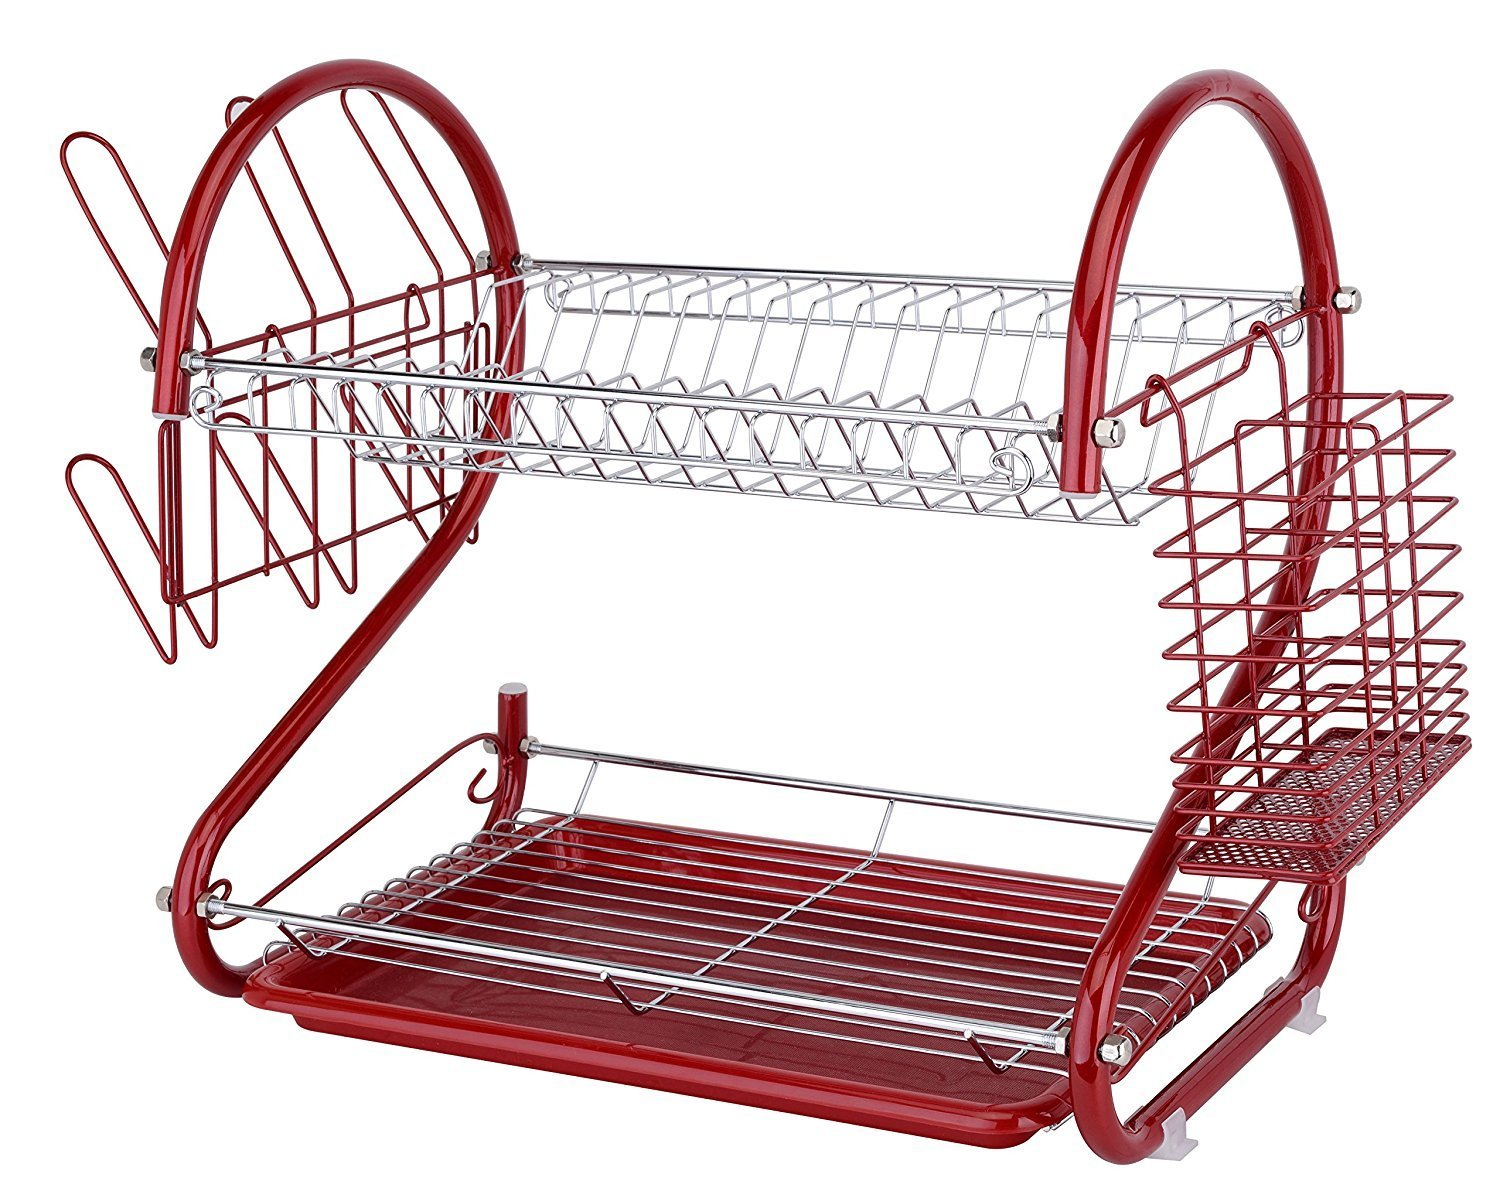 Europe Ware K10766, Iron Red Dish Rack with Plastic Draining Tray and Cutlery Drying... by Europe Ware